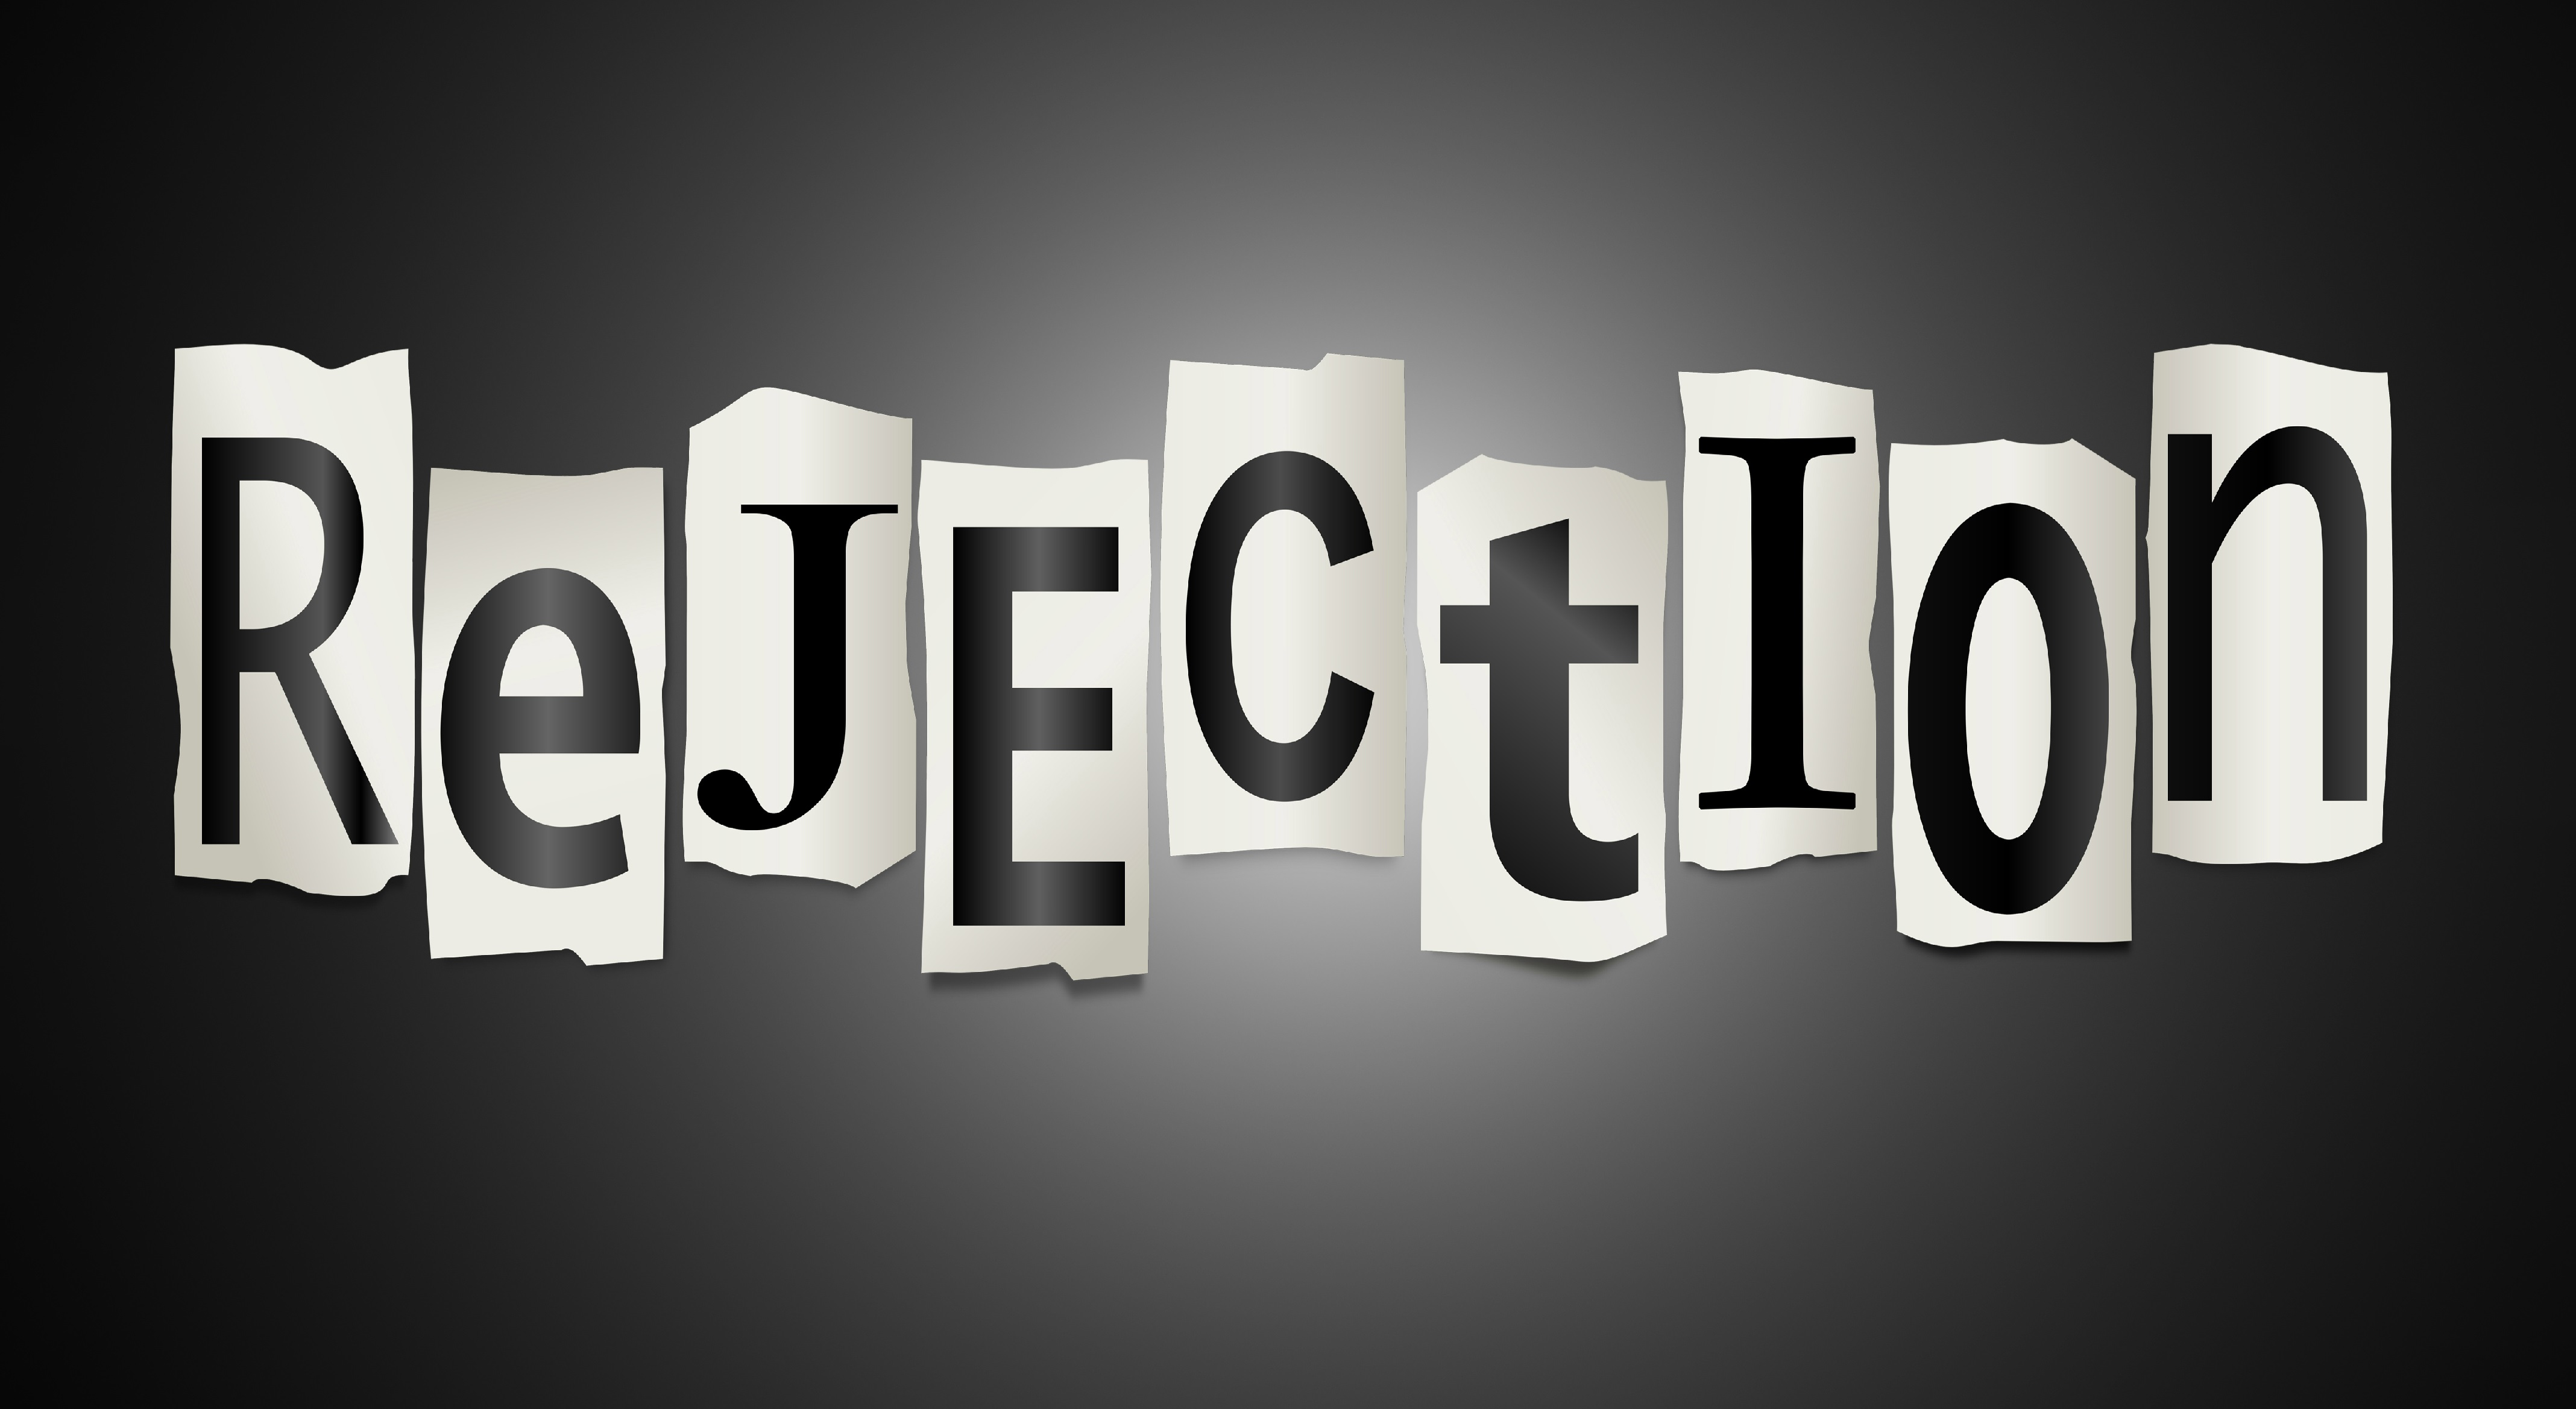 simple techniques for rising above rejection